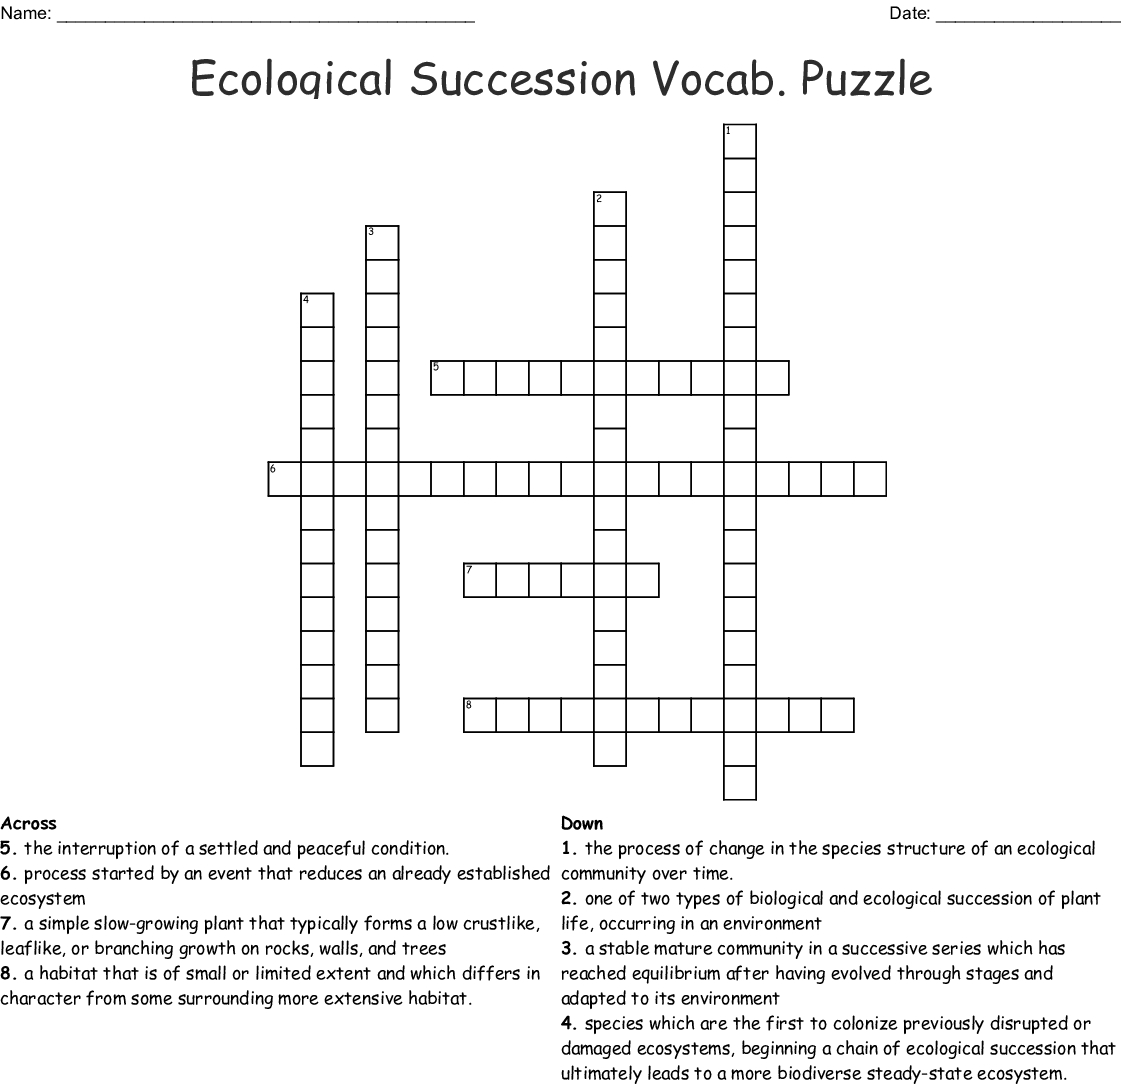 Ecological Succession Worksheet Answer Key — excelguider.com